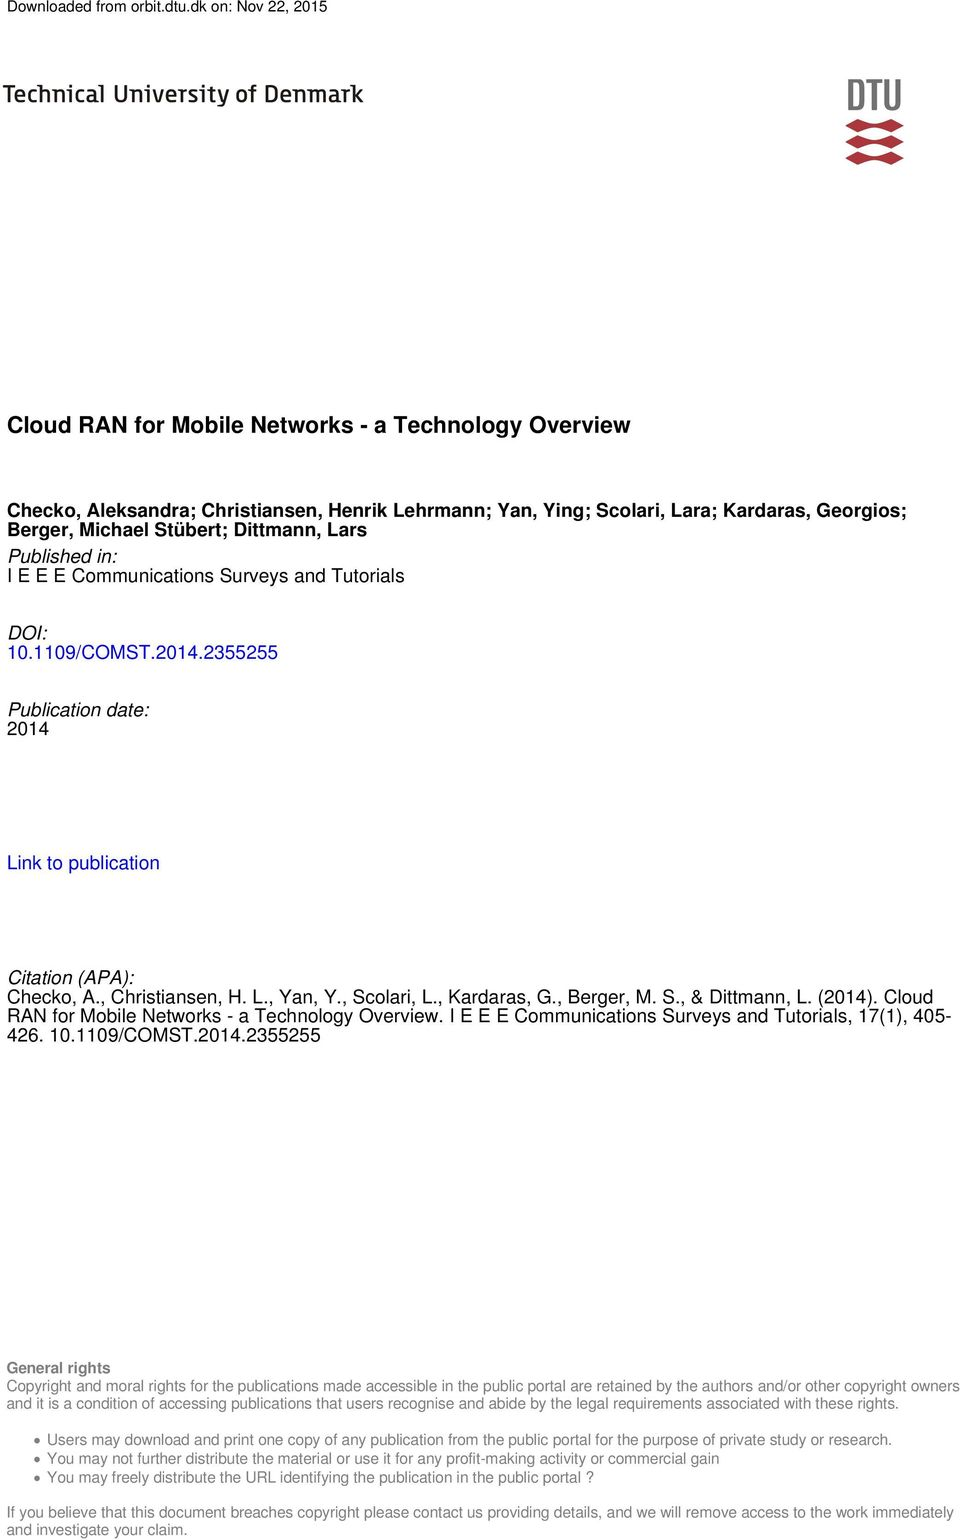 Cloud RAN for Mobile Networks - a Technology Overview - PDF